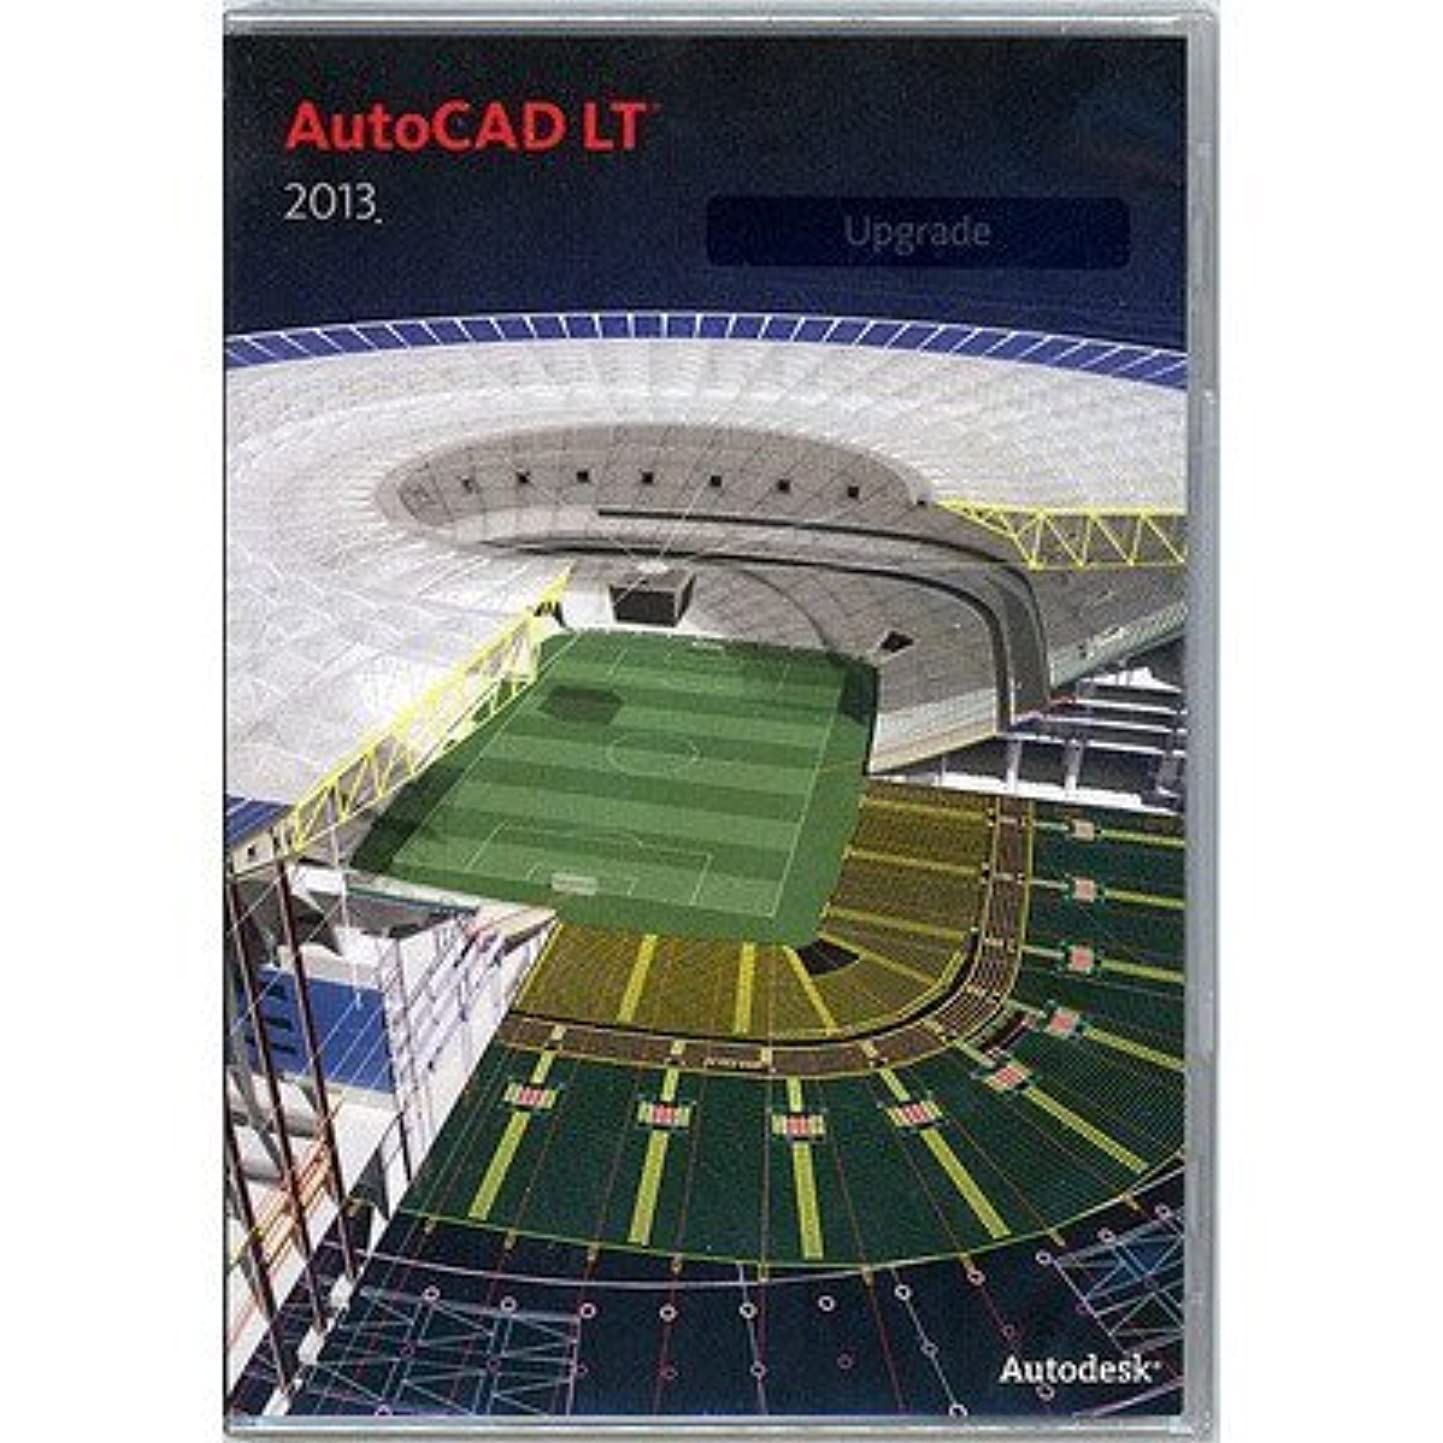 AutoCAD LT 2013 Commercial Upgrade from Previous Version